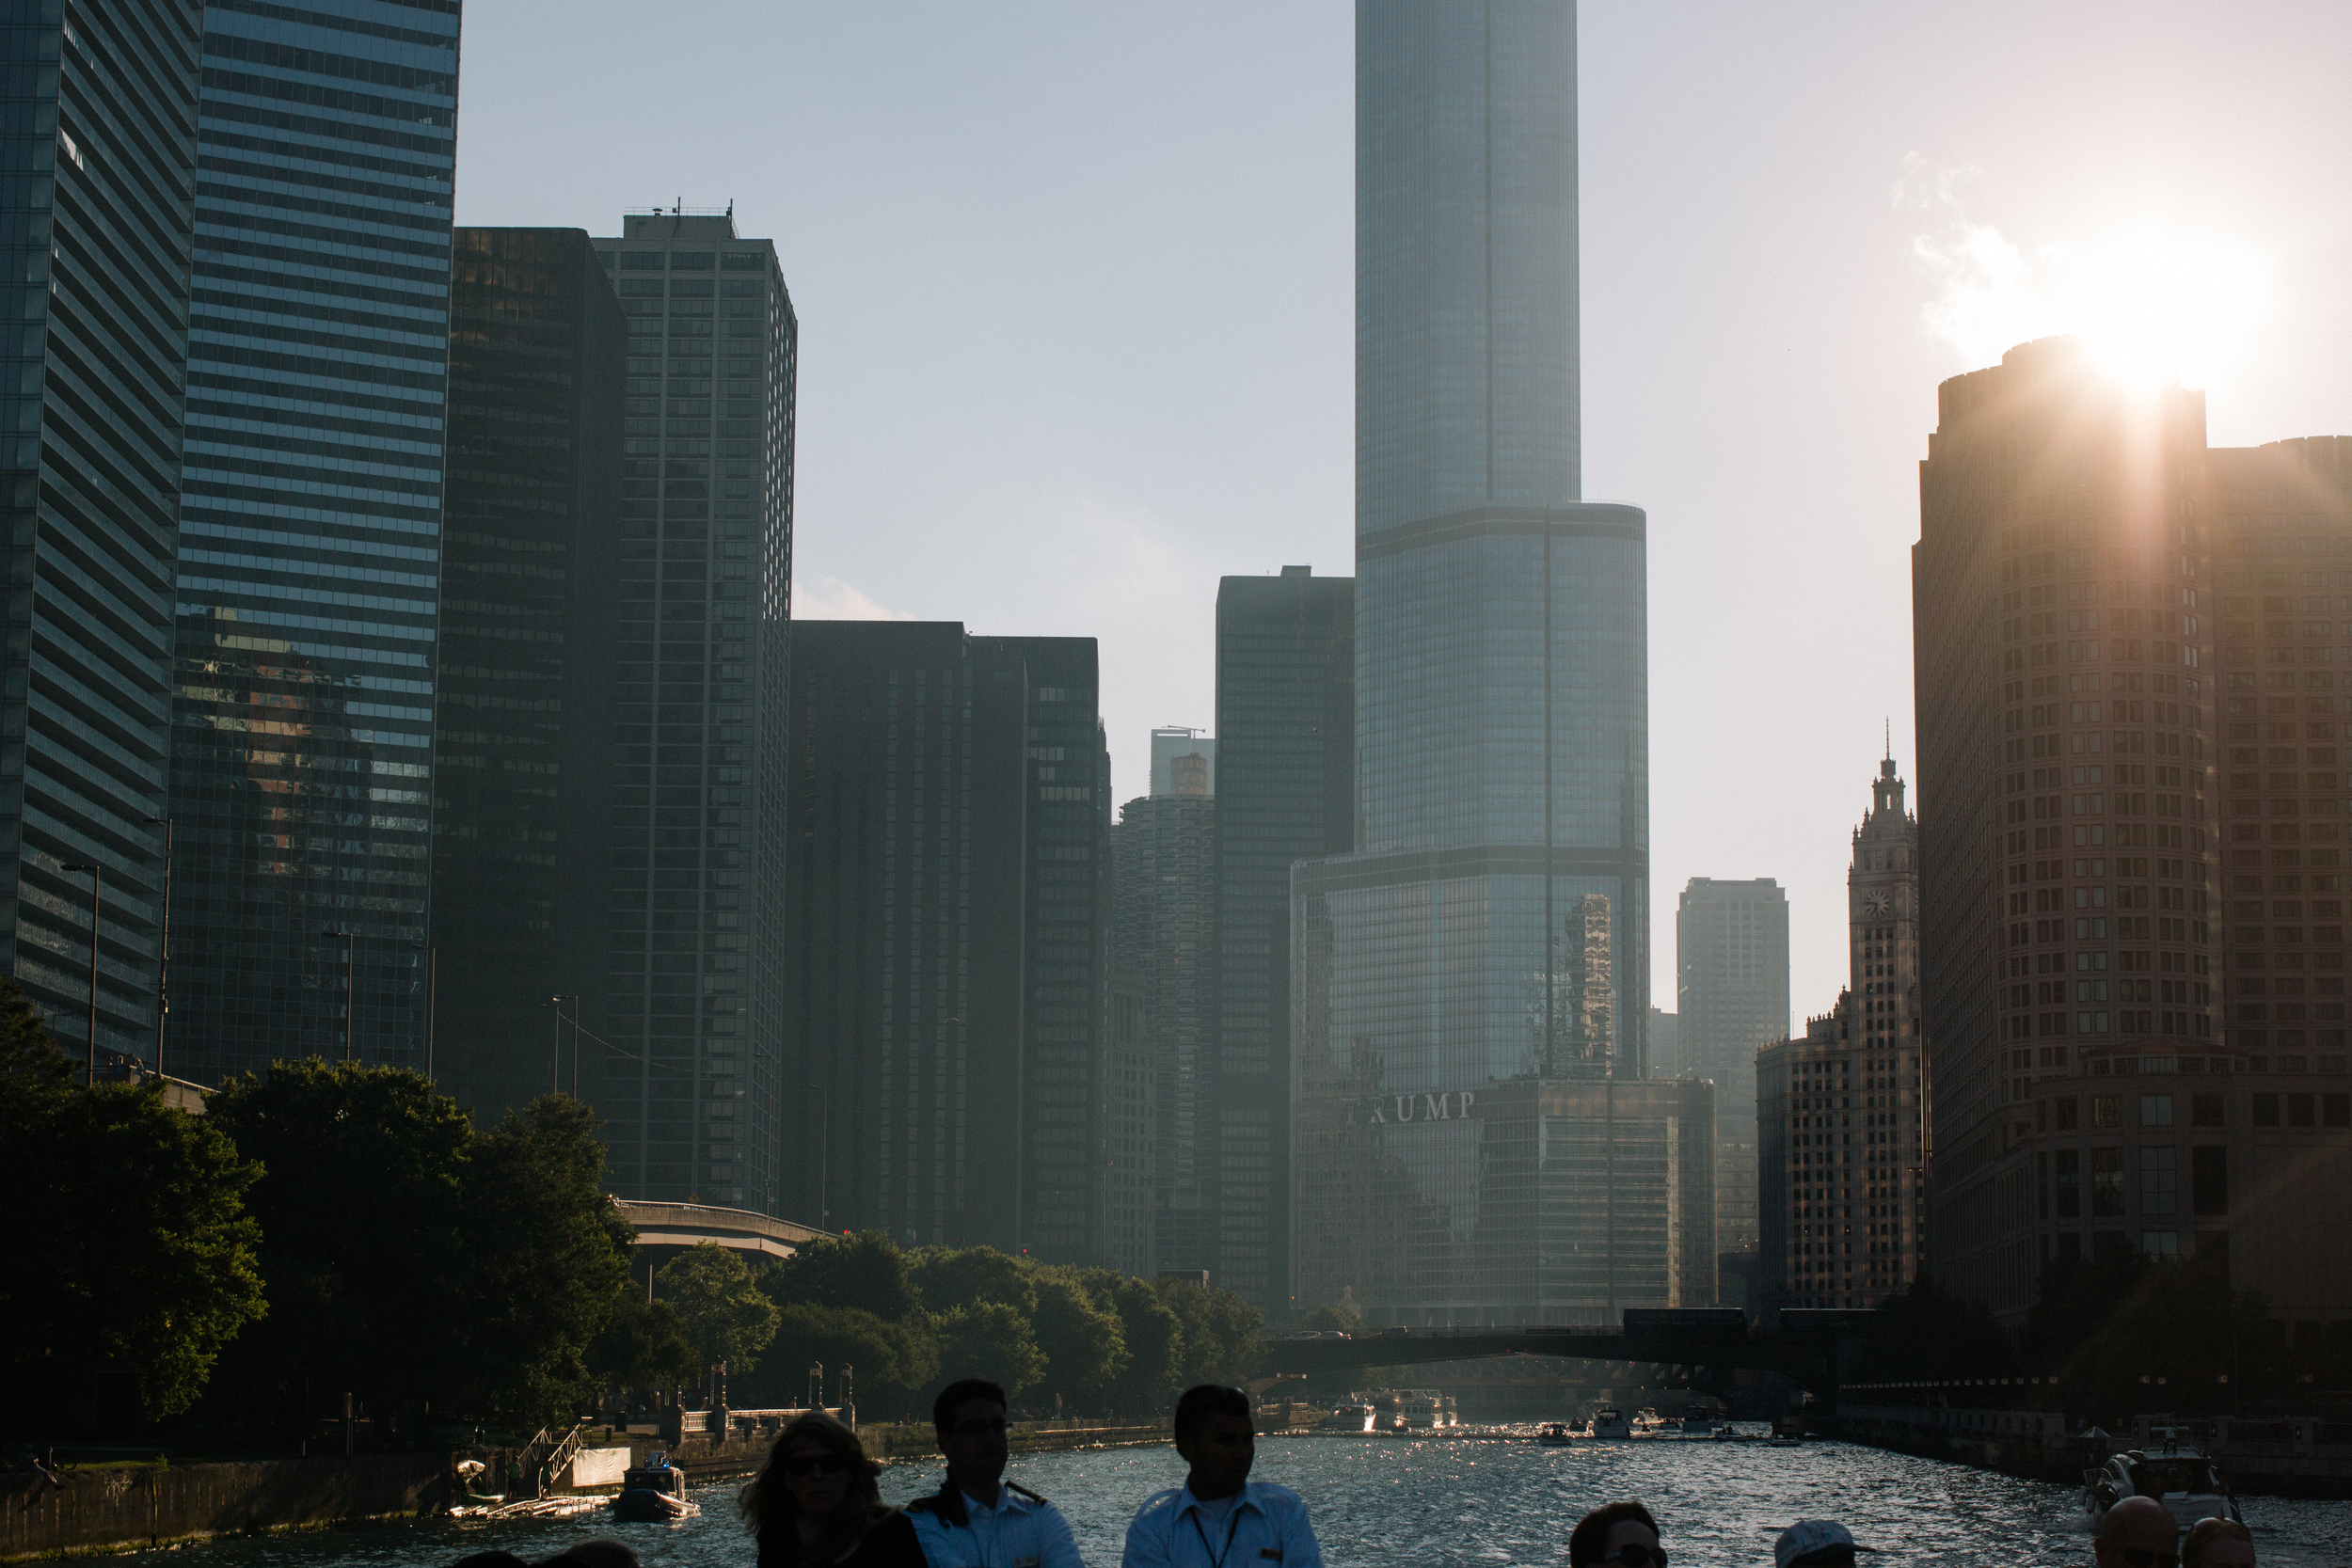 Chicago Architecture Foundation River Cruise  - highly recommended!